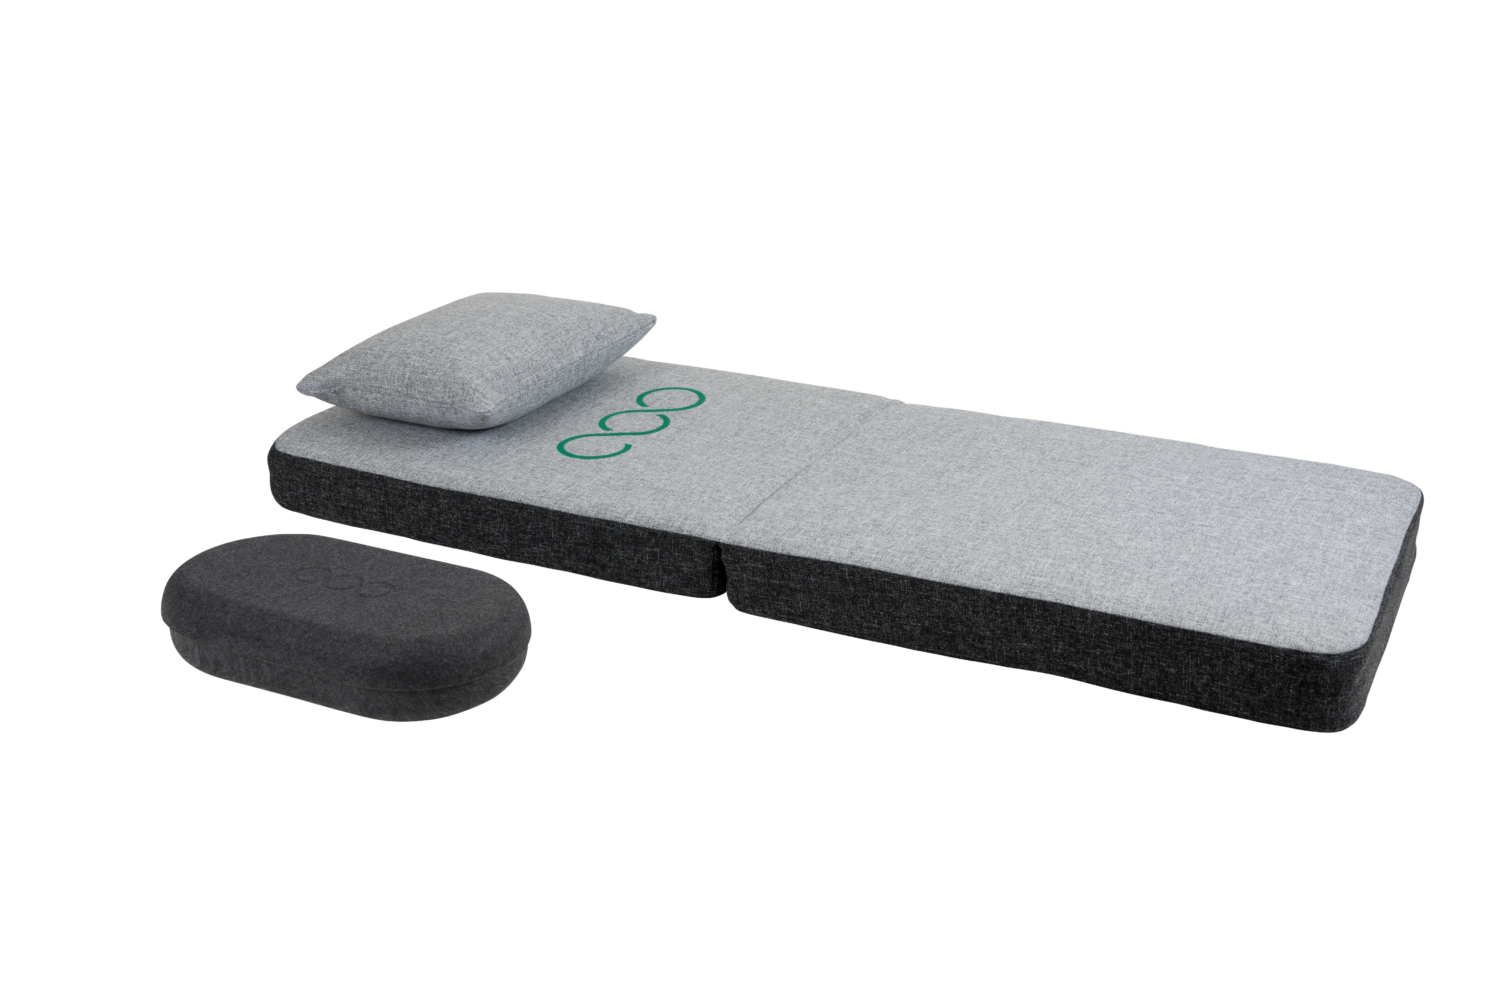 Couch Potato Company introduce the new Neurosonic Mobile Mattress to the UK